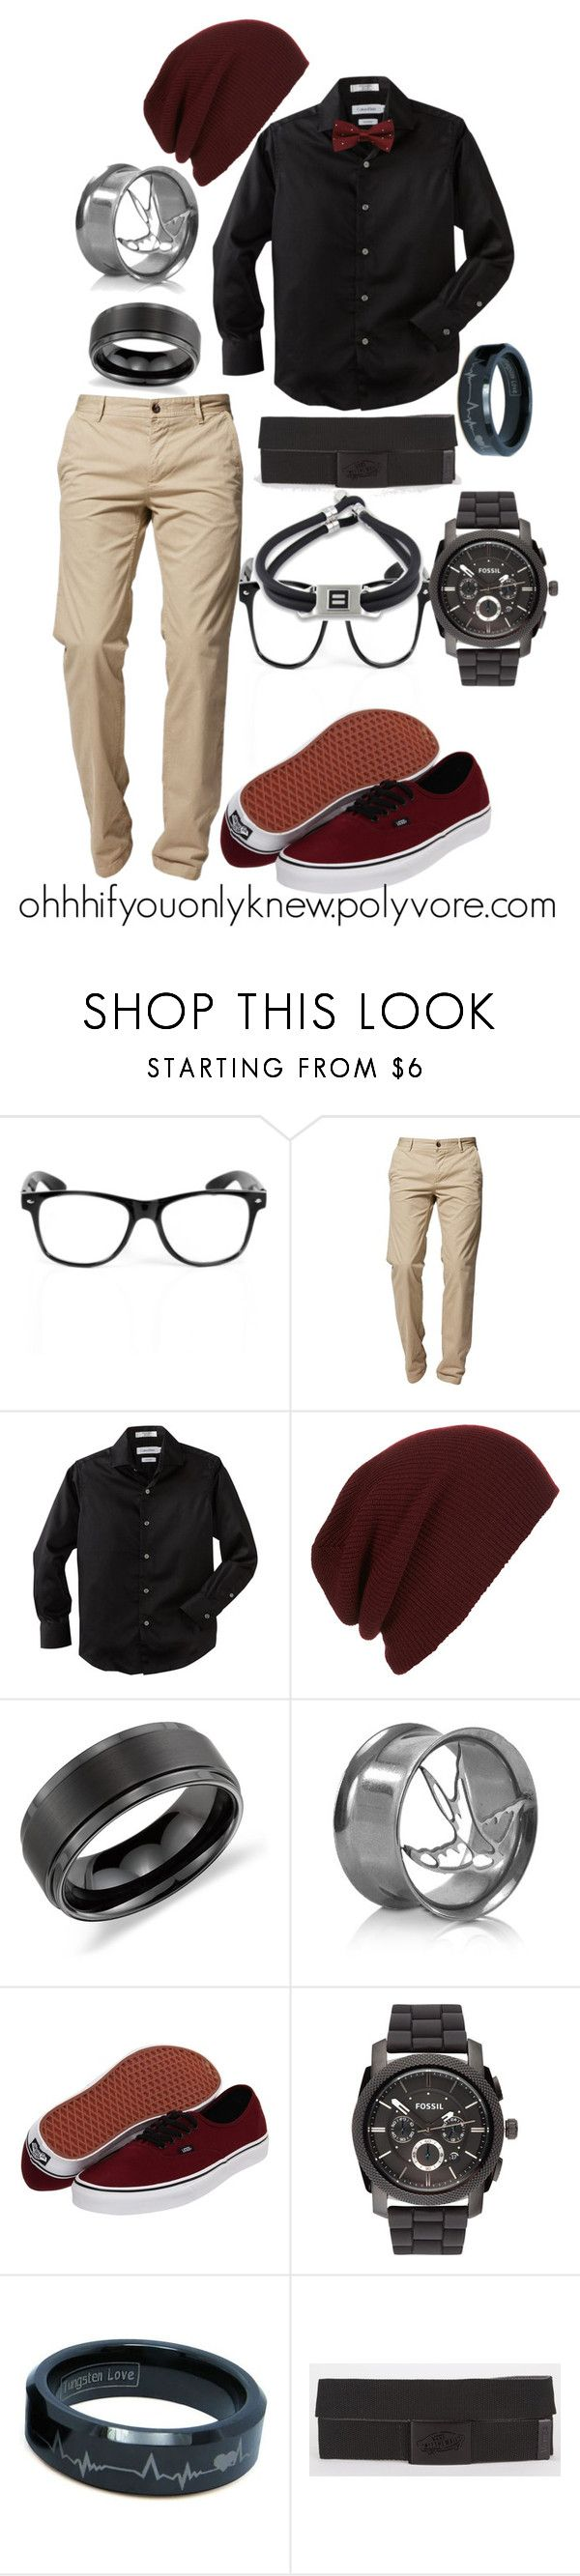 """Untitled #27"" by ohhhifyouonlyknew ❤ liked on Polyvore featuring Vision, BOSS Orange, Calvin Klein, Topman, Blue Nile, Vans, FOSSIL, my creation, my style and casual"